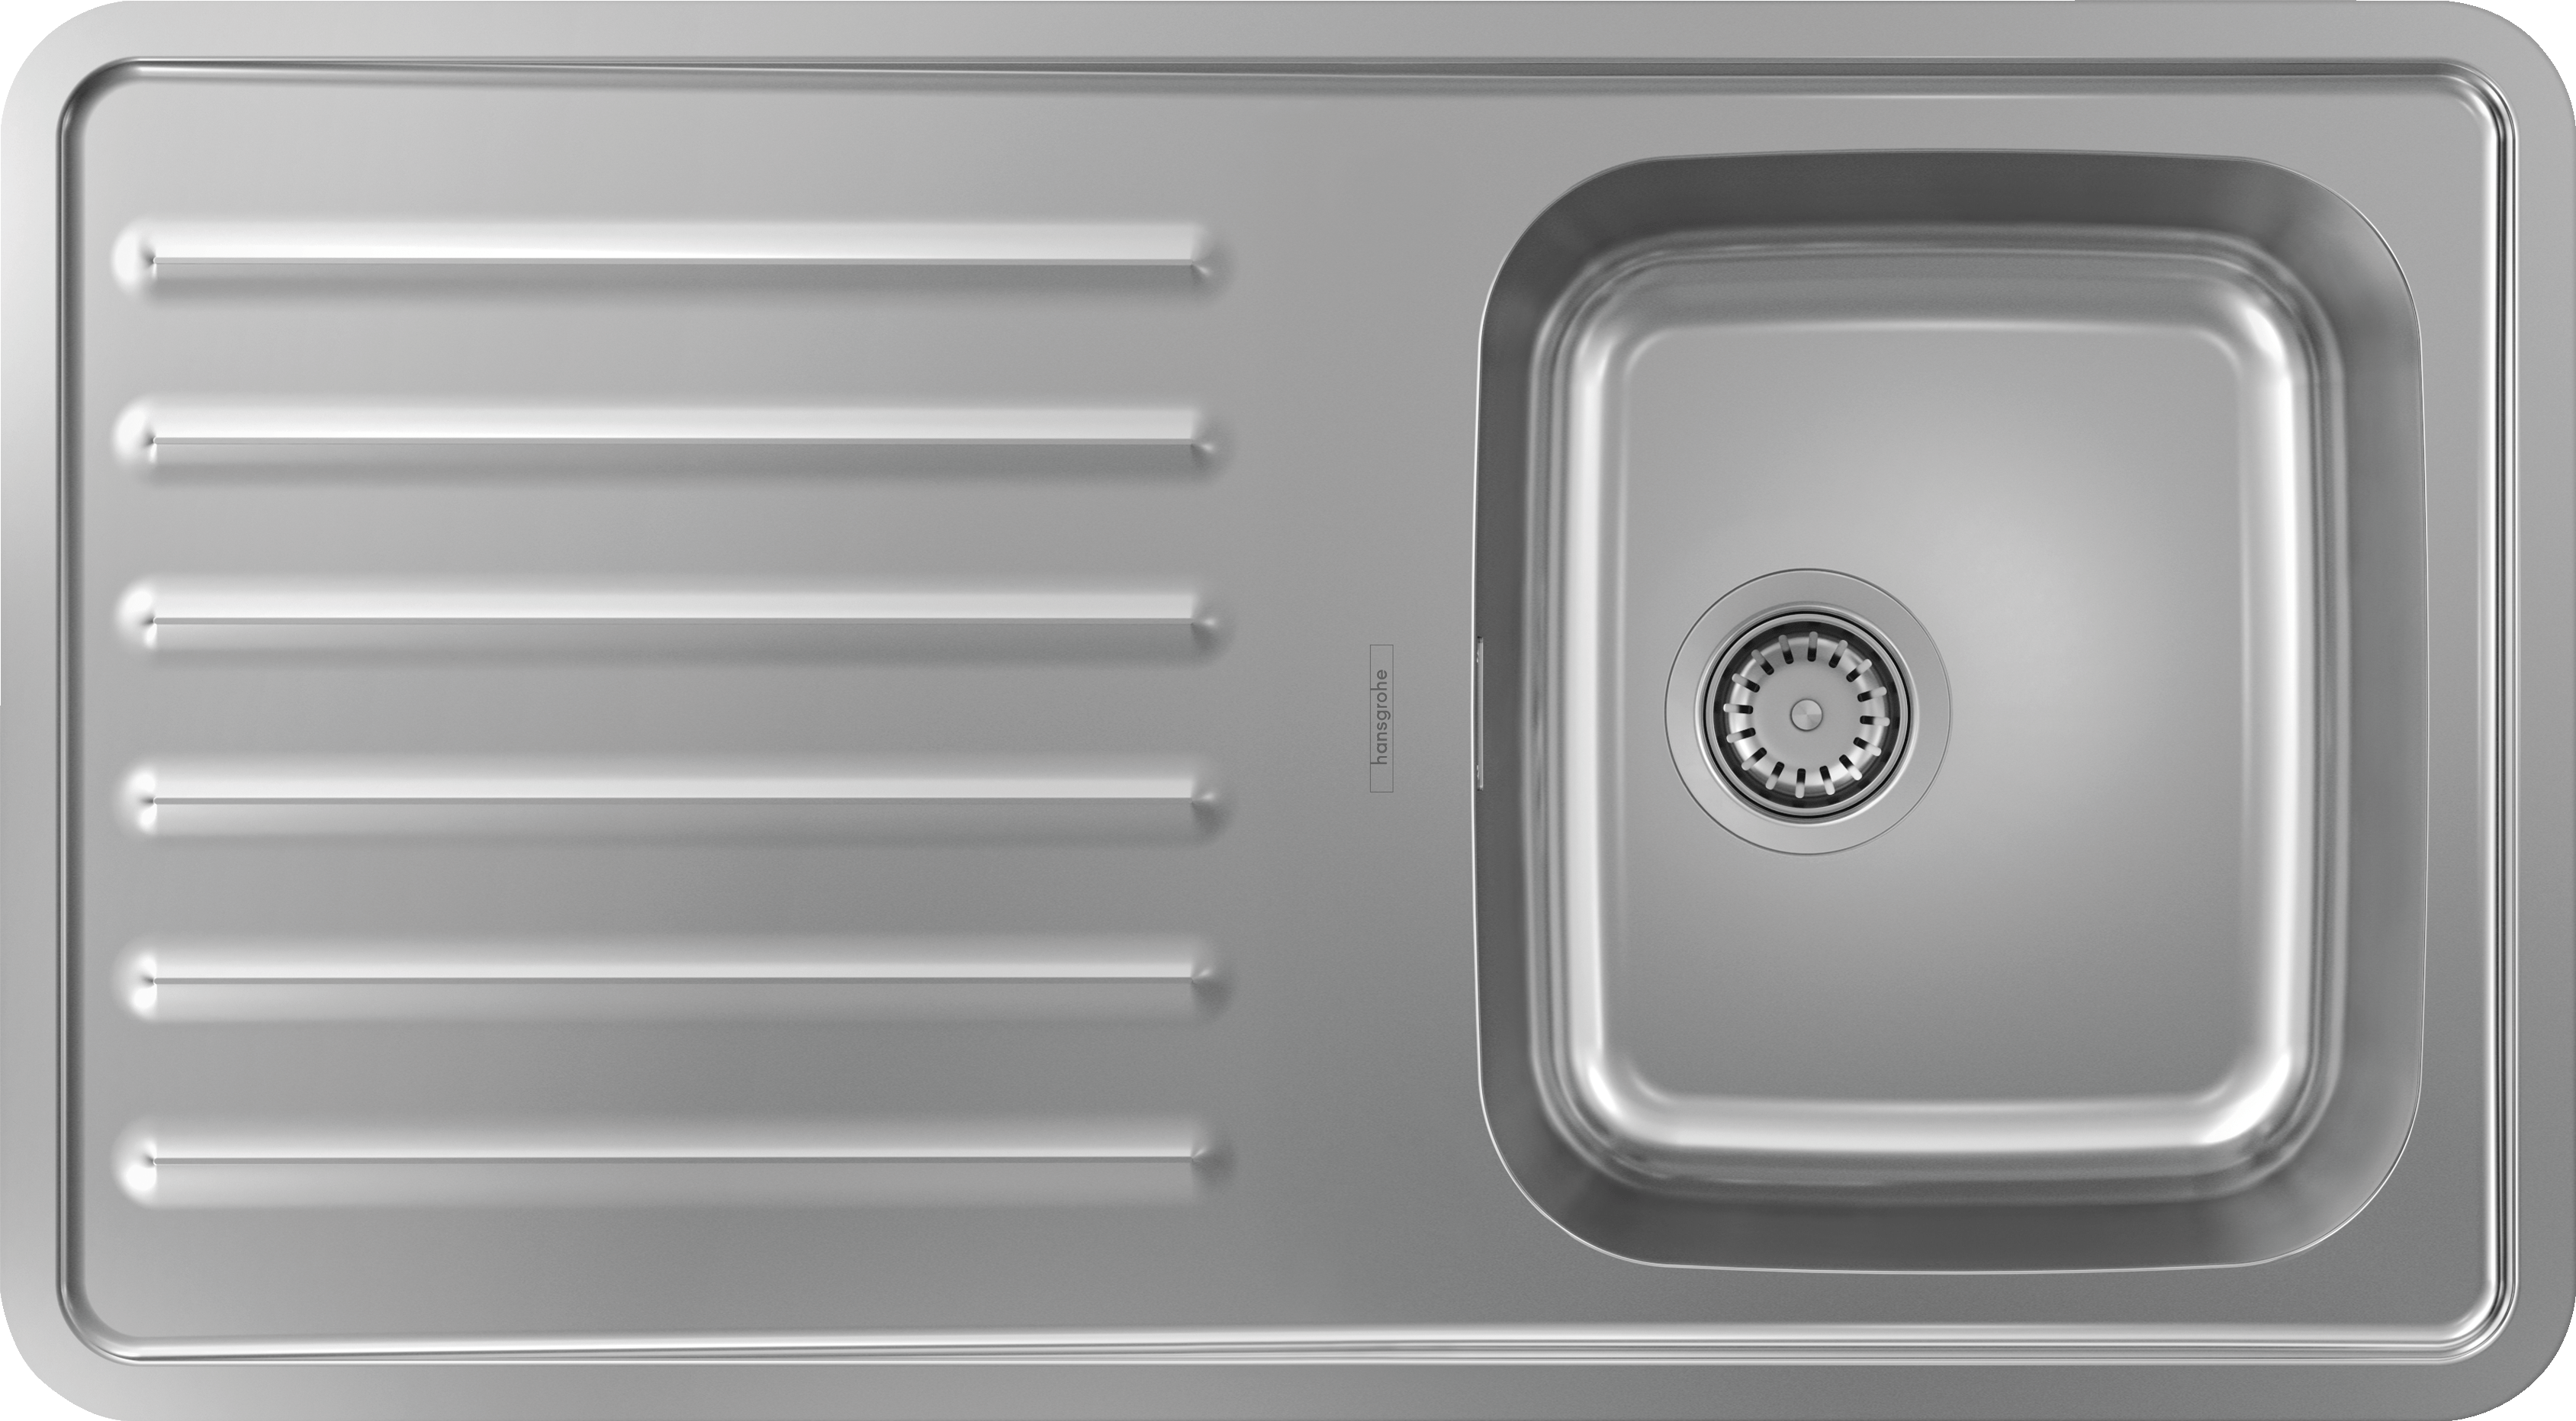 hansgrohe sinks s41 s4111 f340 built